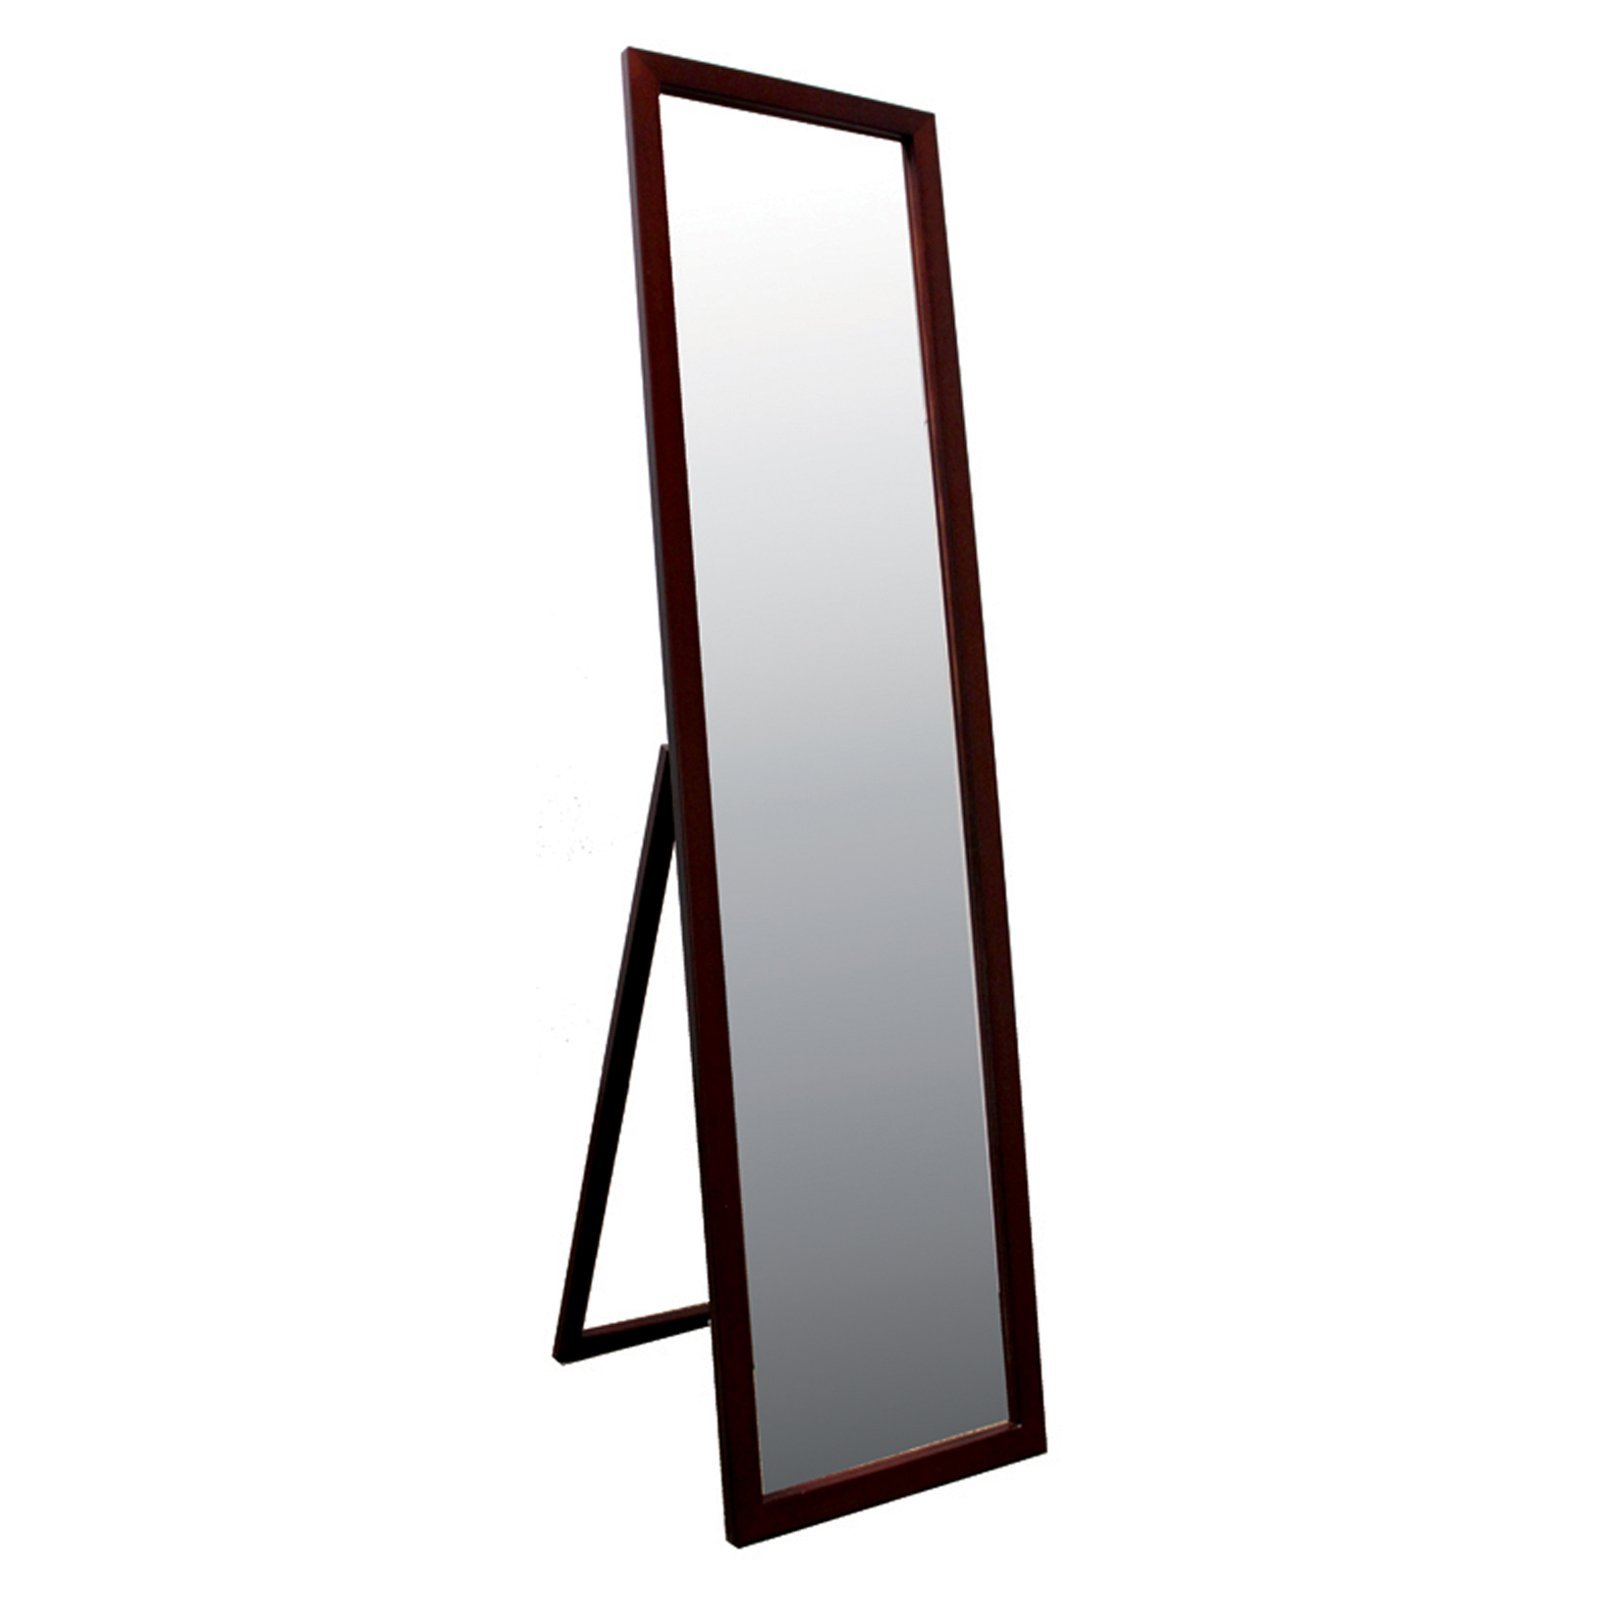 Full Length Floor Mirror Tall 55'' Free Standing Mount Solid hardwood Frame Vertical Leaning